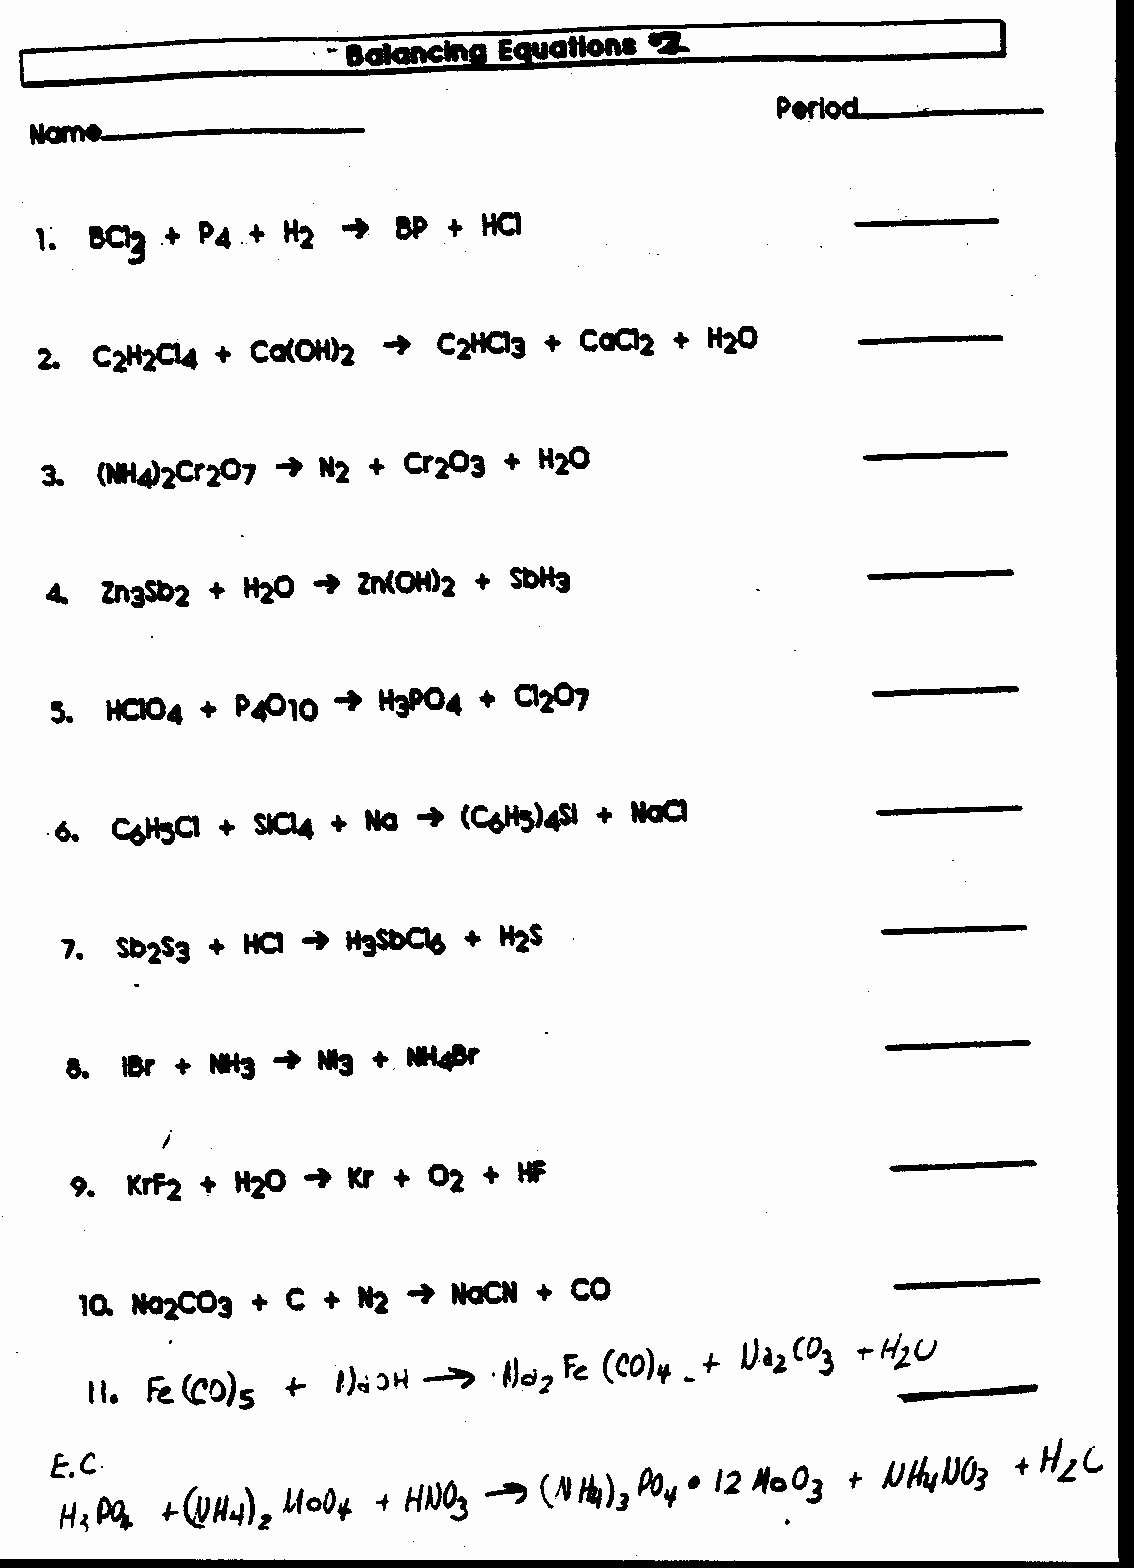 Worksheet Balancing Equations Answers Lovely Balancing Equations Worksheet Health and Fitness Training